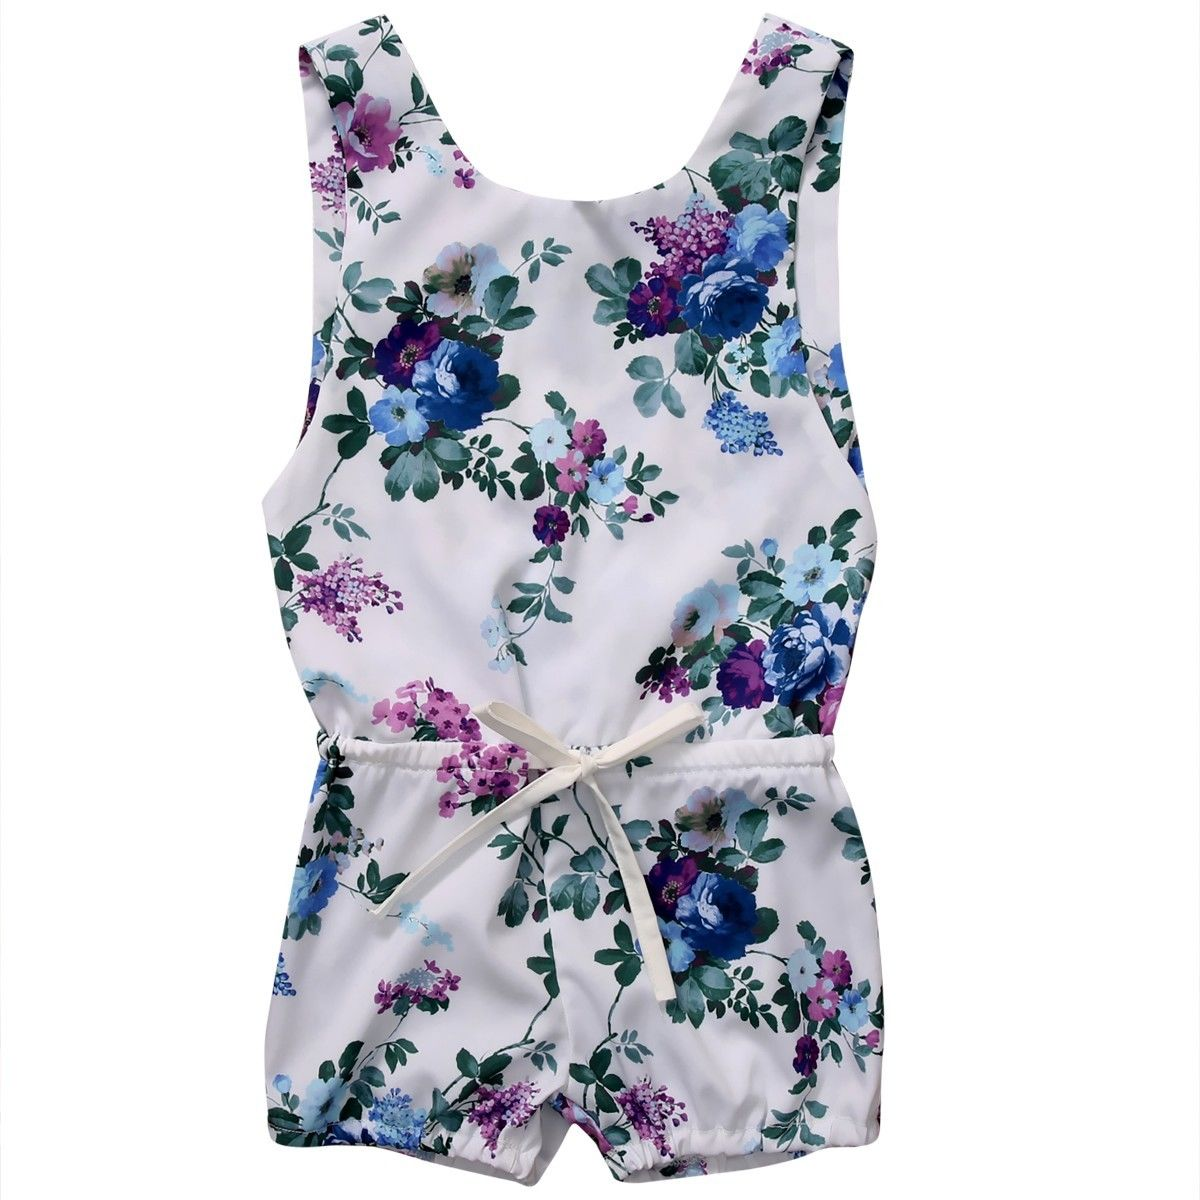 Newborn Kids Baby Girl Floral One-pieces Romper 2017 Summer Sleeveless Flower Backless Jumper Jumpsuit Outfit Clothes